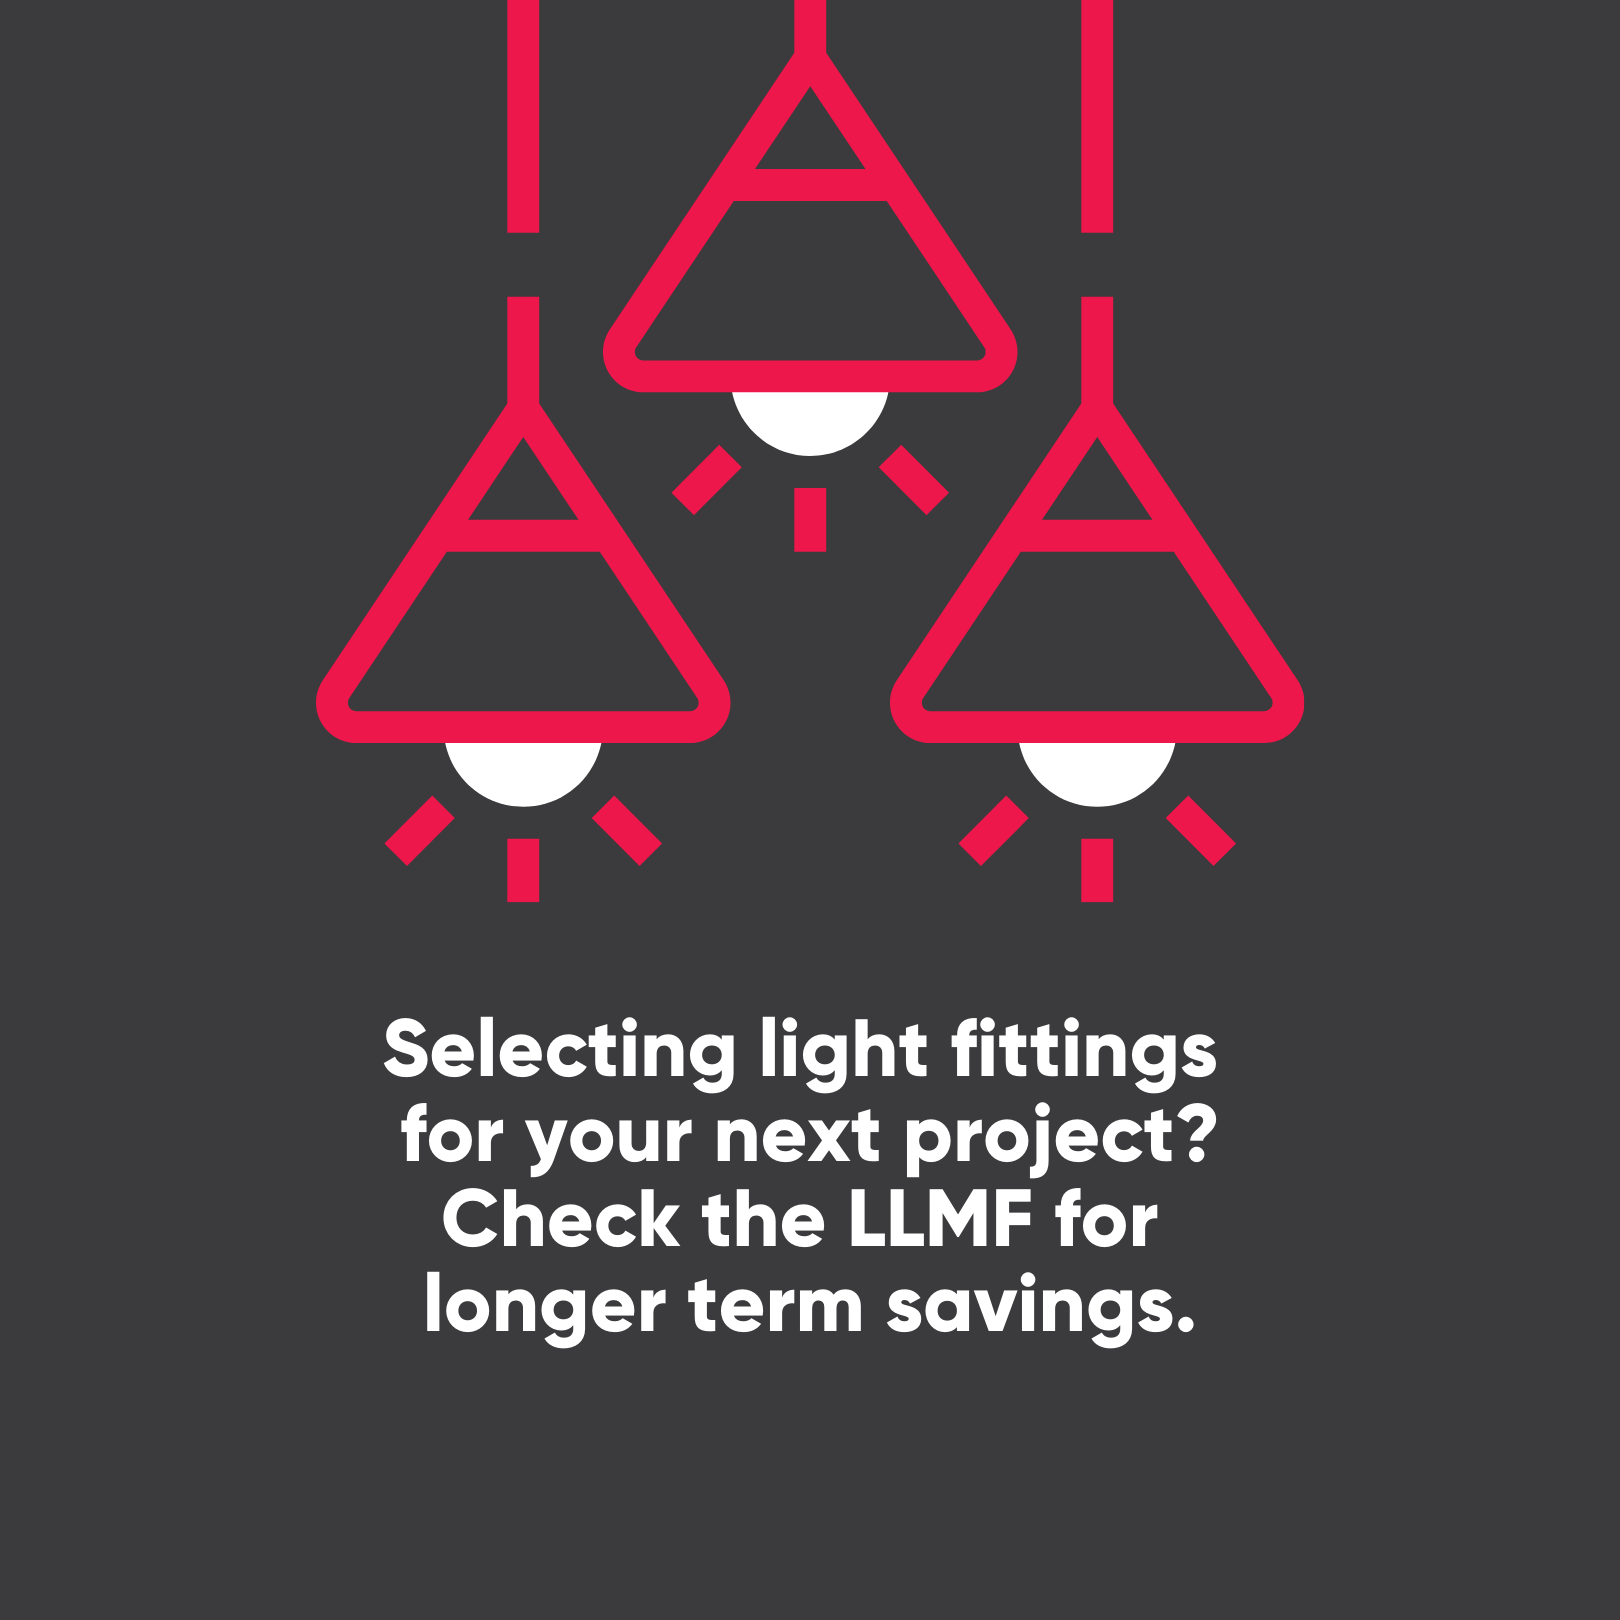 Selecting light fittings for your next project? Check the LLMF for longer term savings.